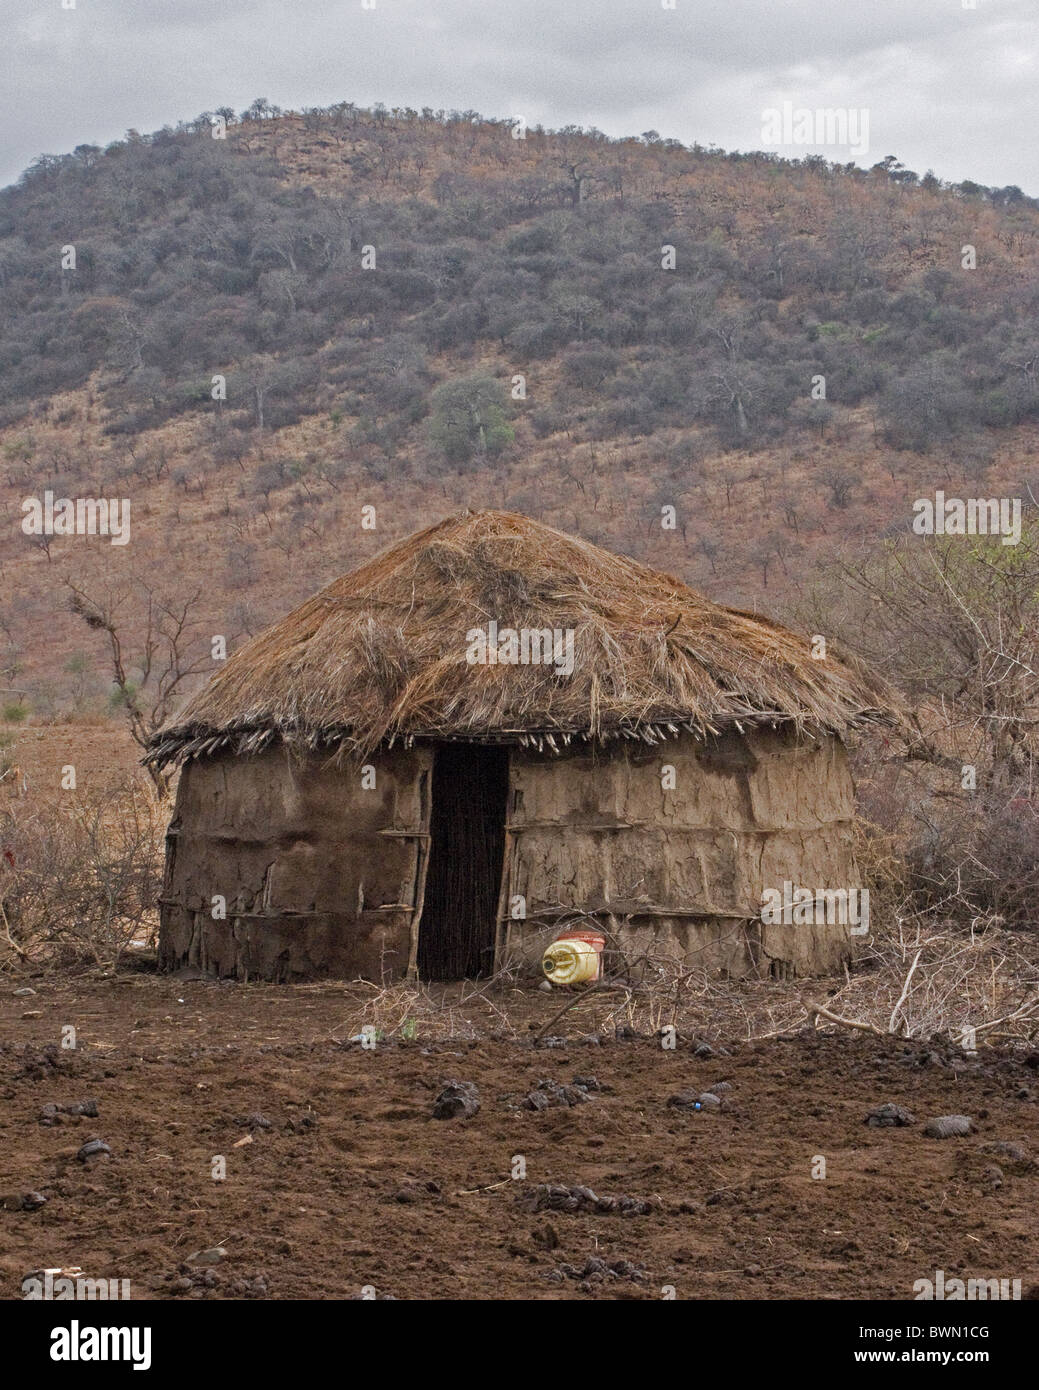 Traditional Masai mud and thatch hut in Tanzania. Stock Photo